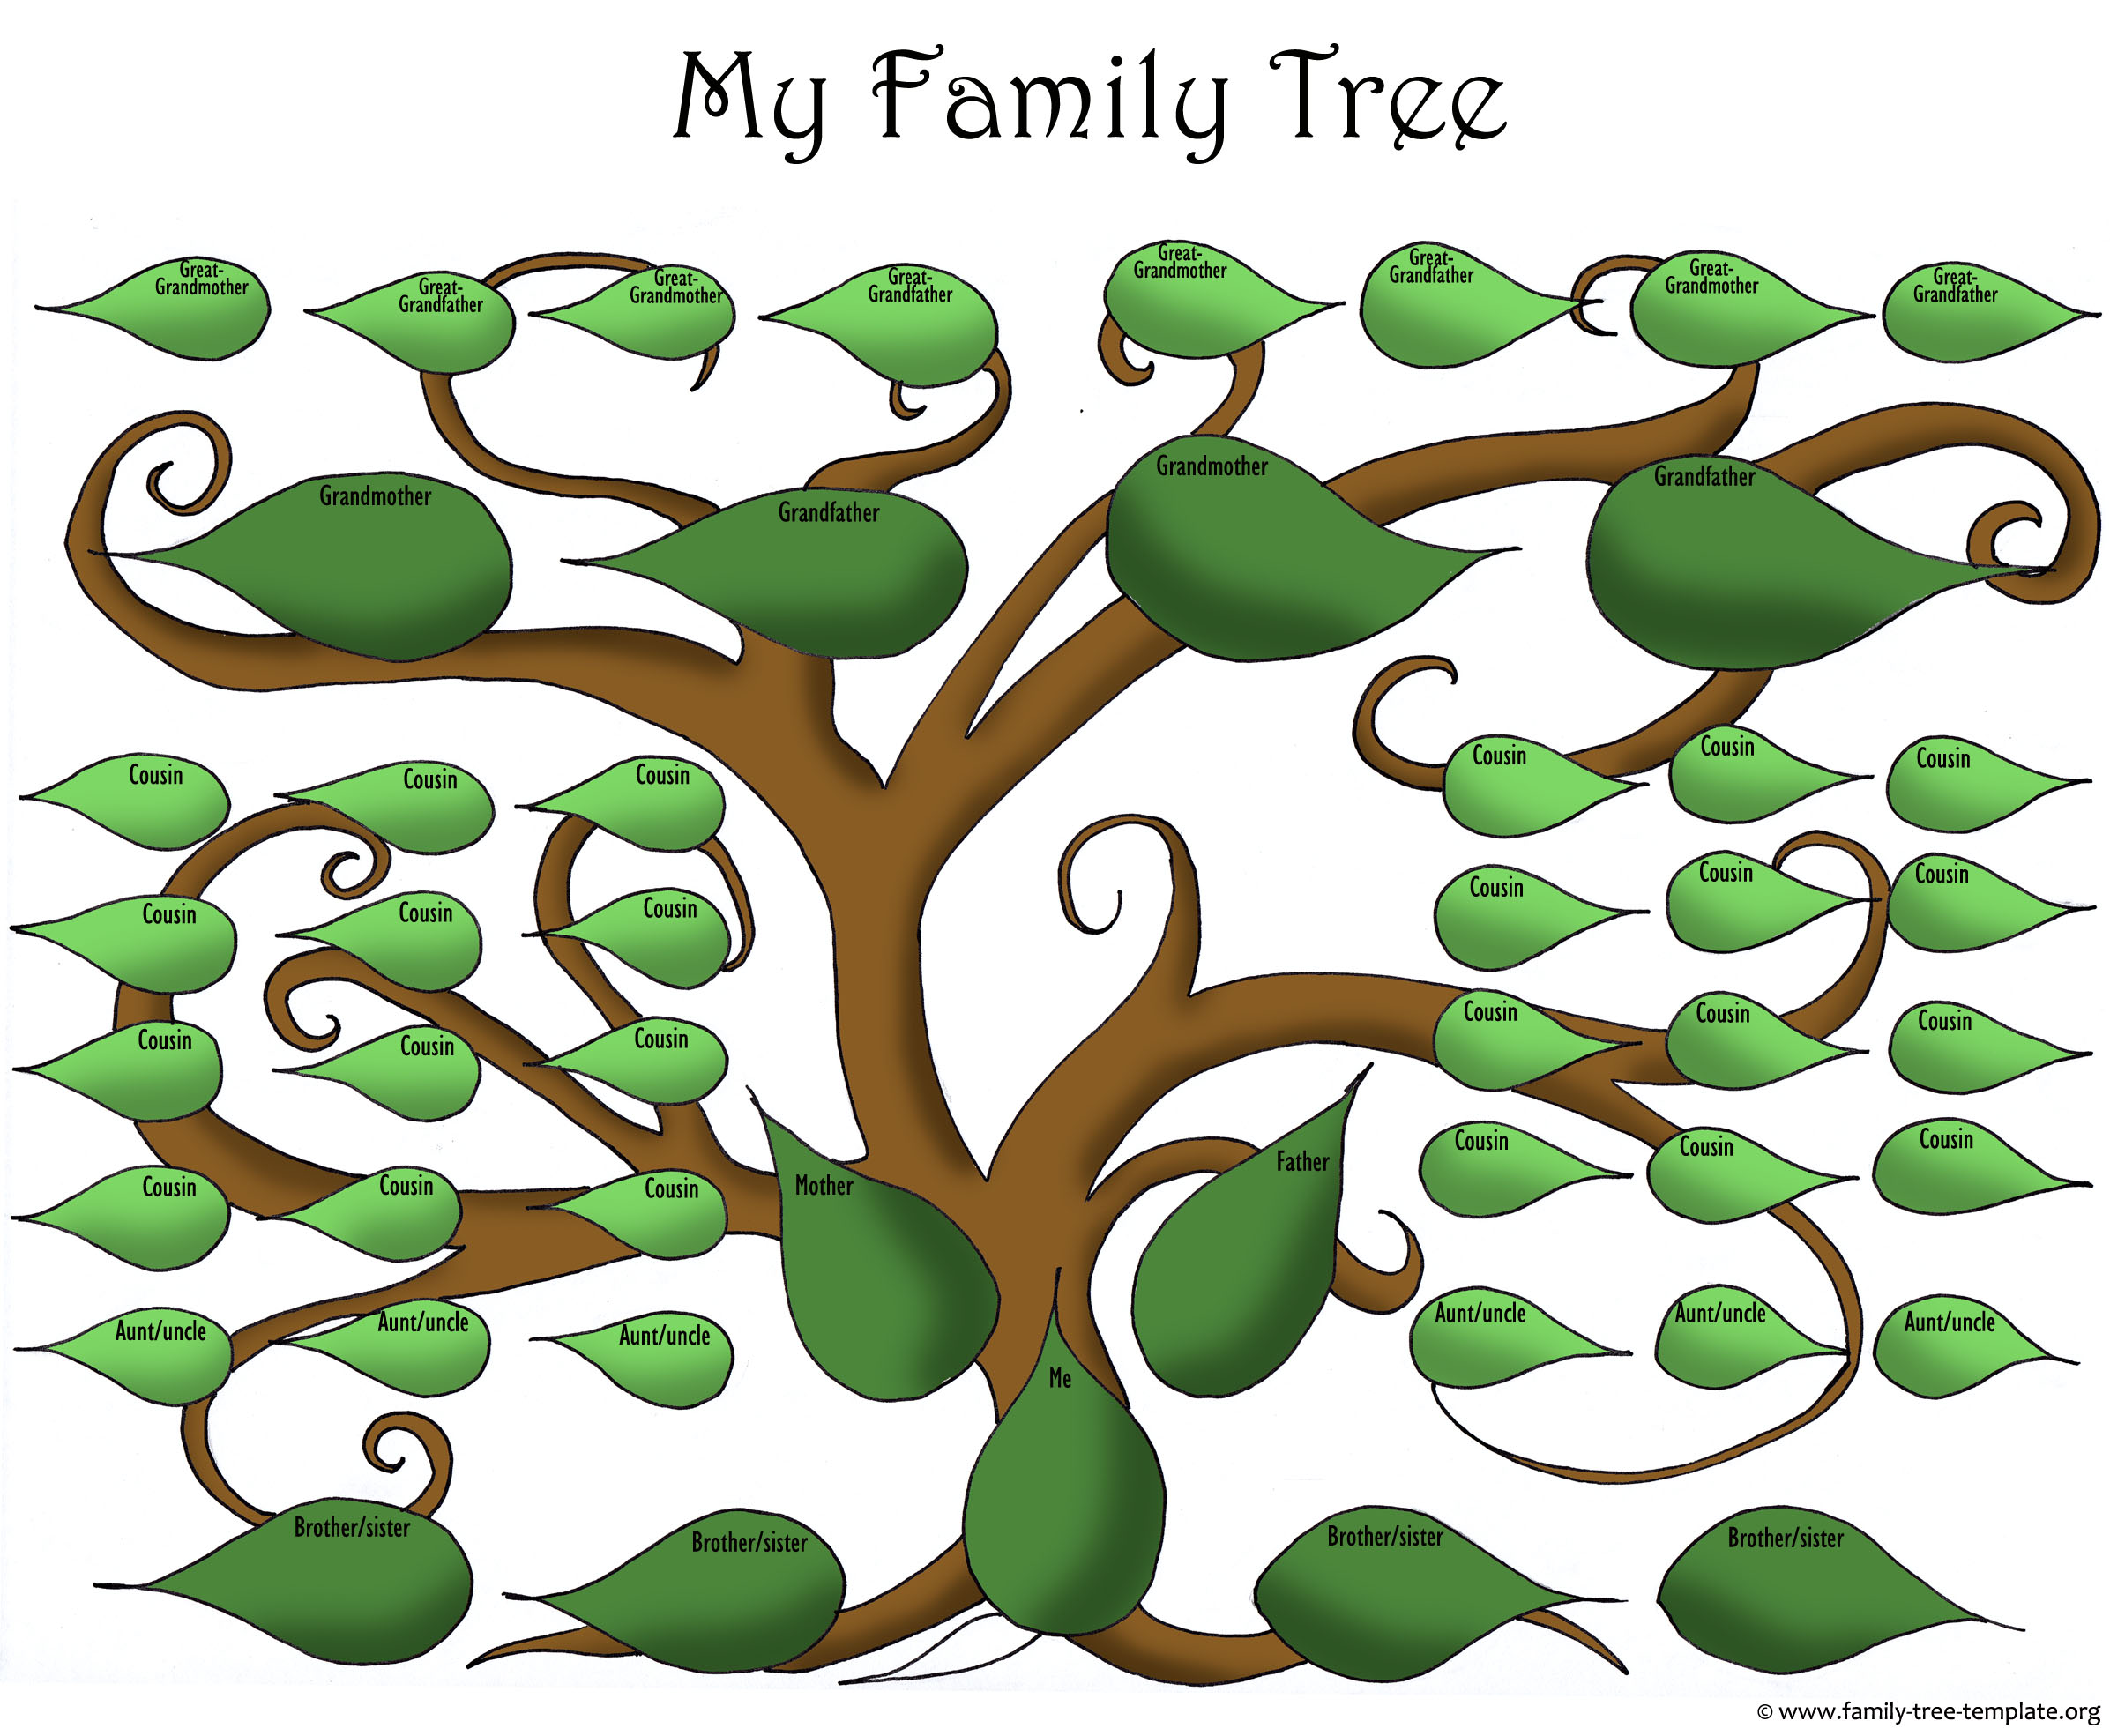 family tree diagram template wiring symbol twisted pair a printable blank to make your kids genealogy